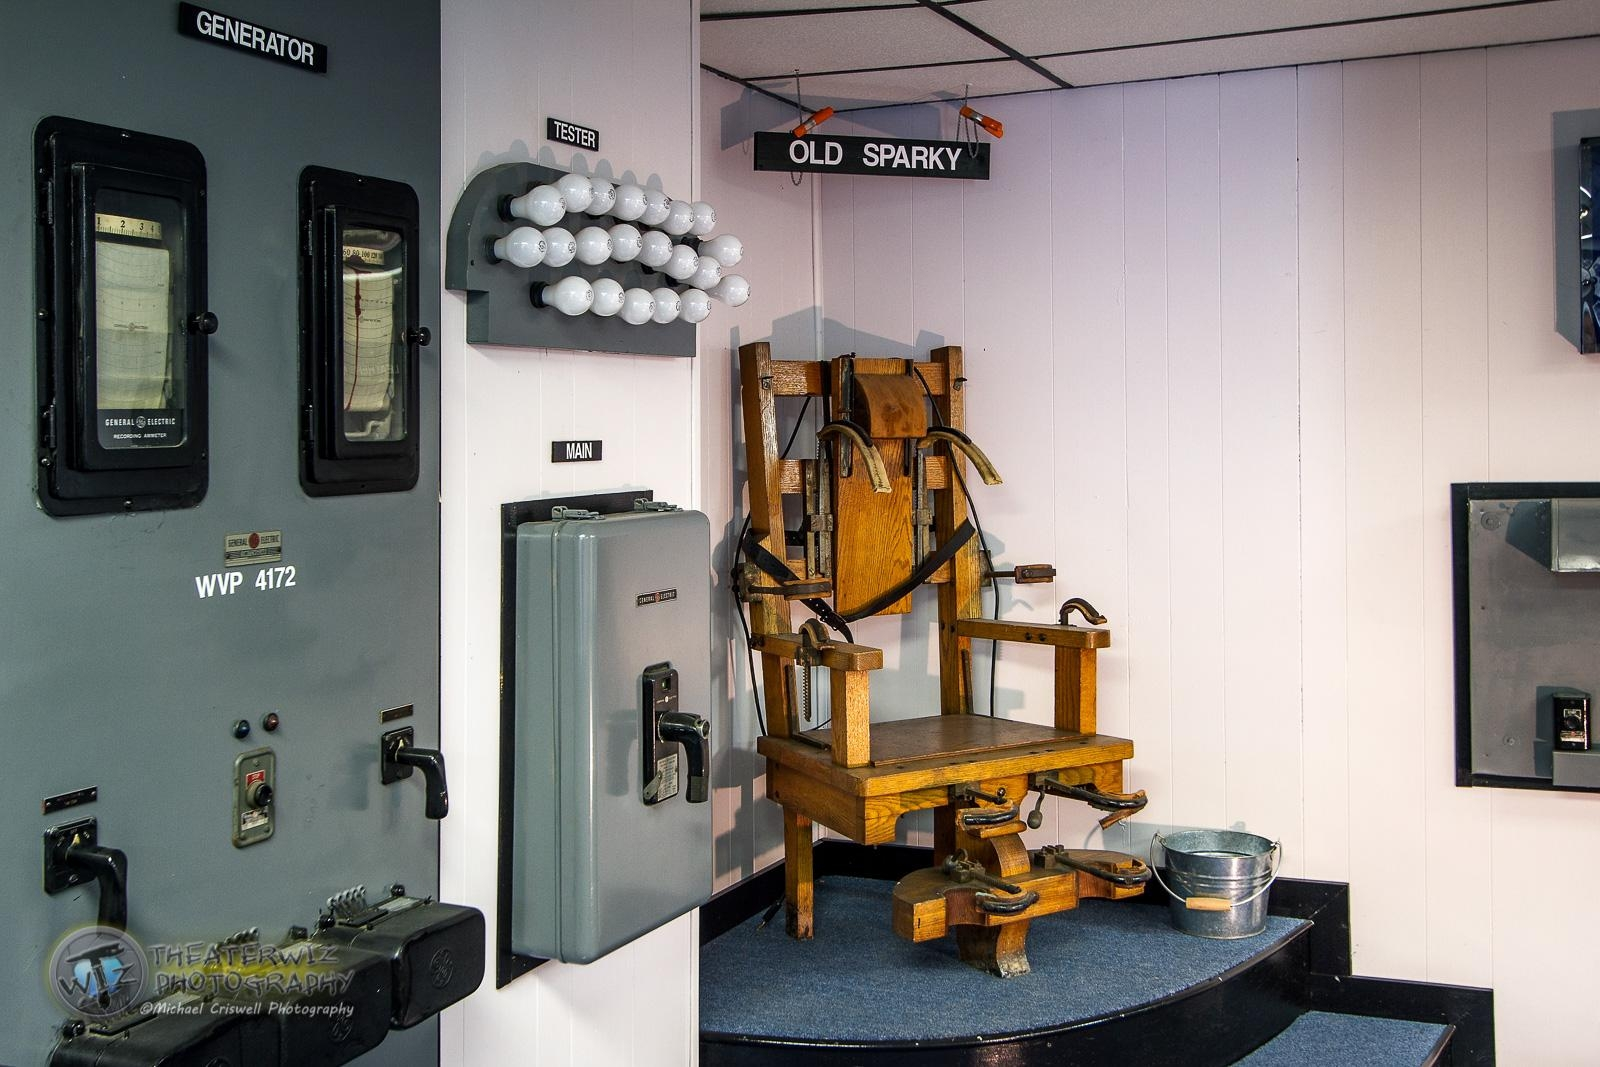 Old Sparky